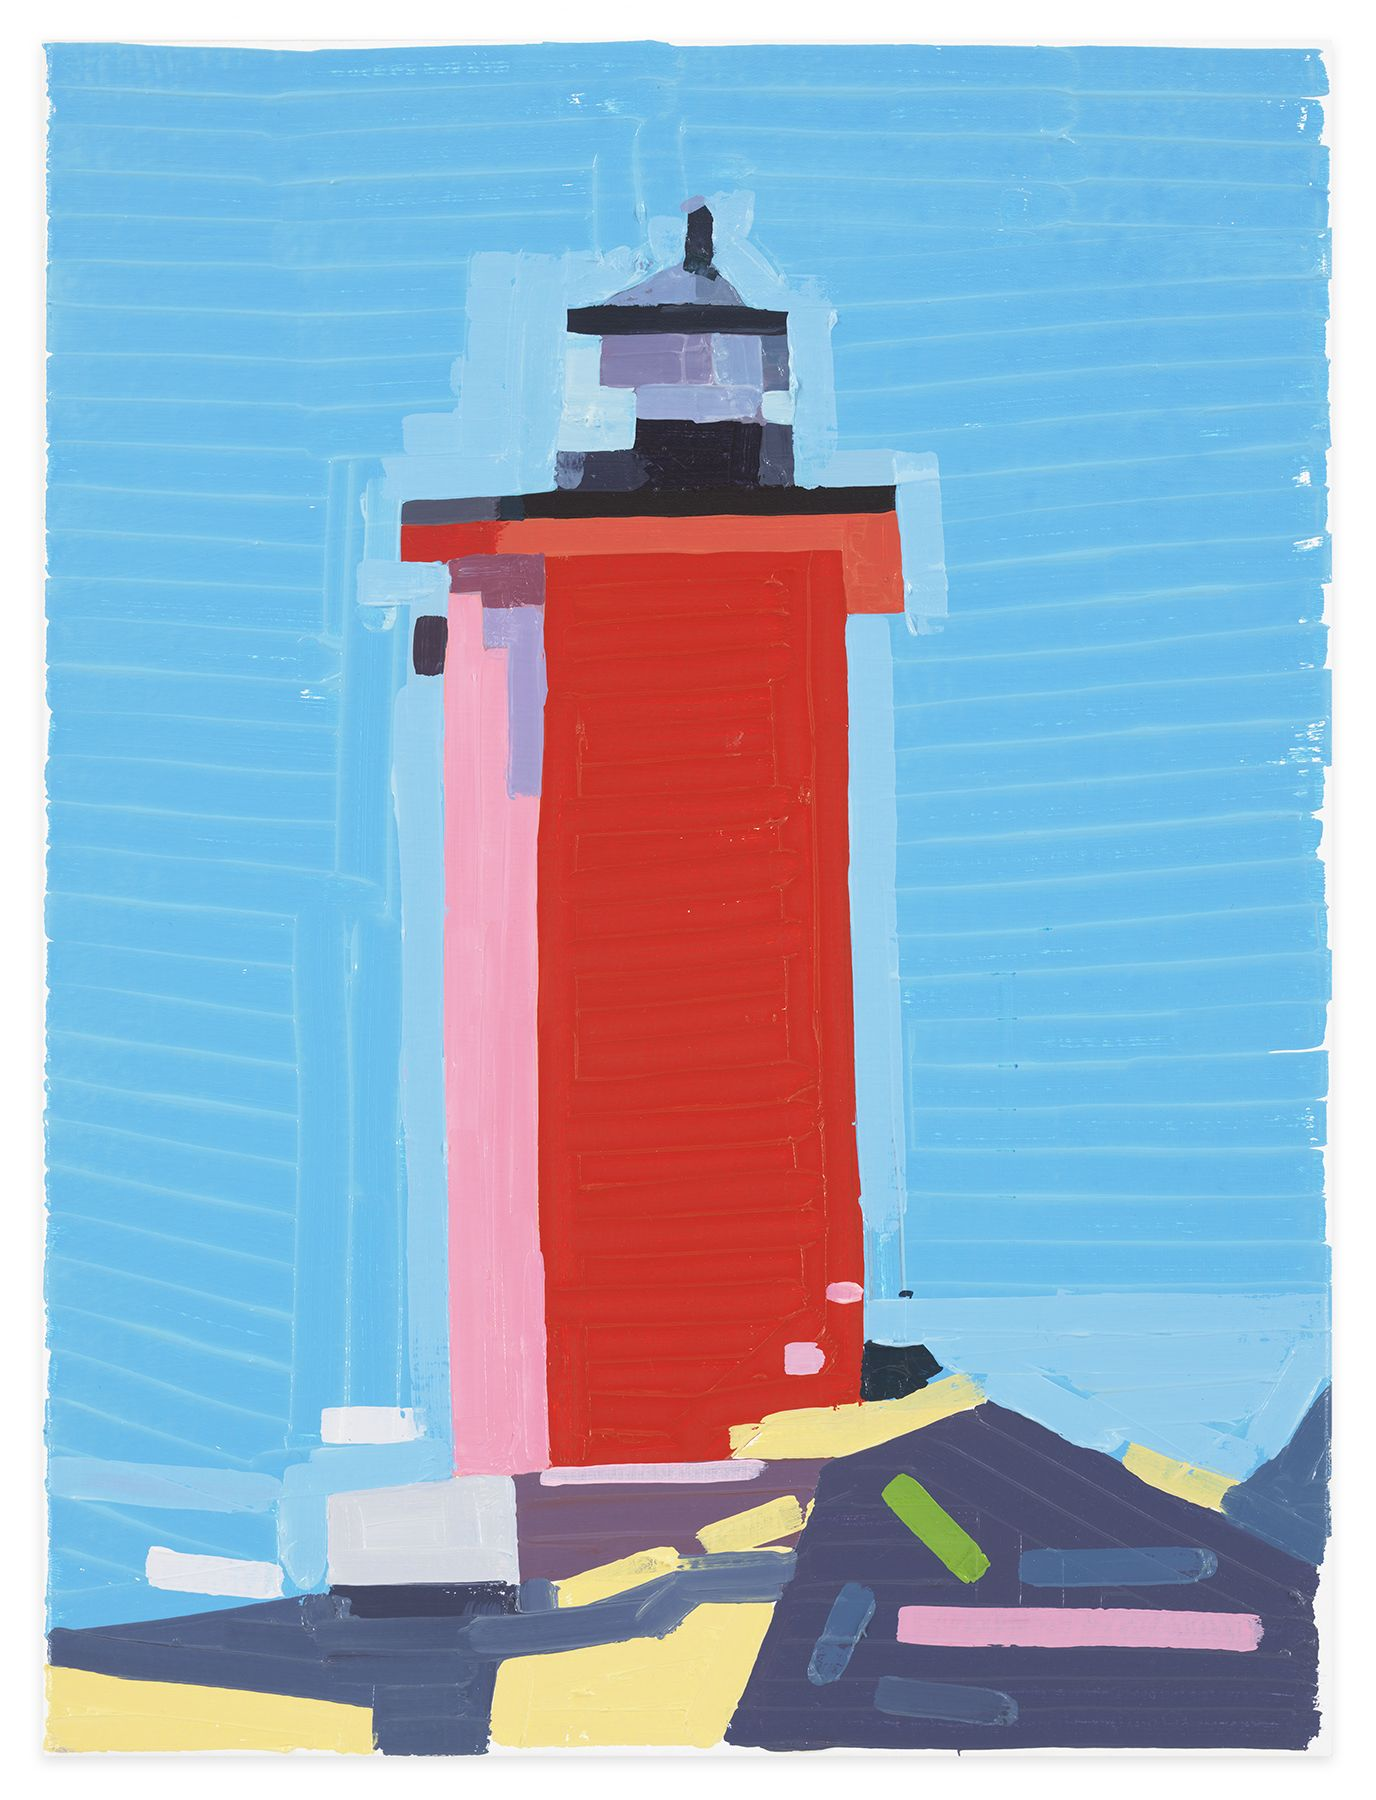 Europe Lighthouse, 2020, Oil on canvas, 15 3/4 x 11 7/8 inches, 40 x 30 cm,MMG#32647